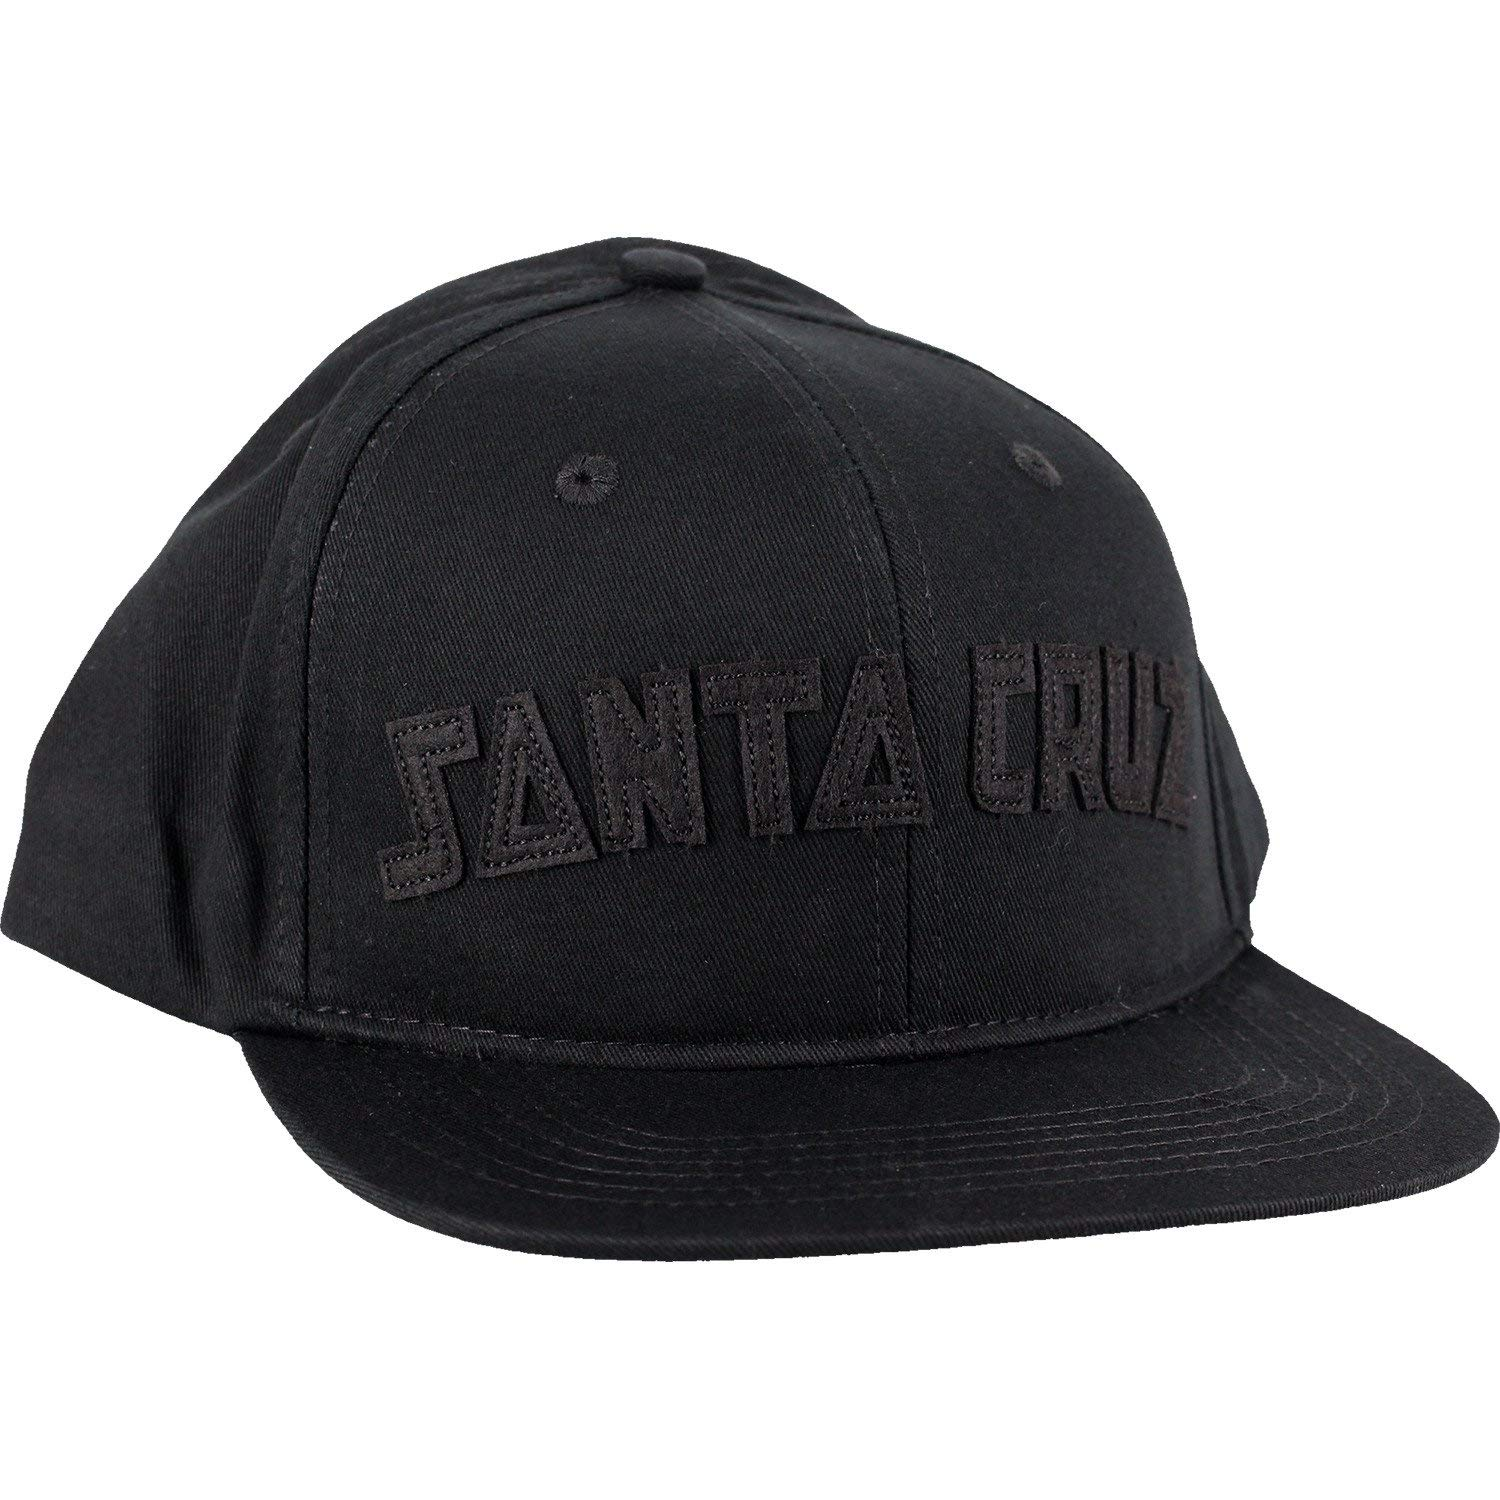 cb3f10f735016 Santa Cruz Skateboards Arch Strip Black Snapback Hat - Adjustable